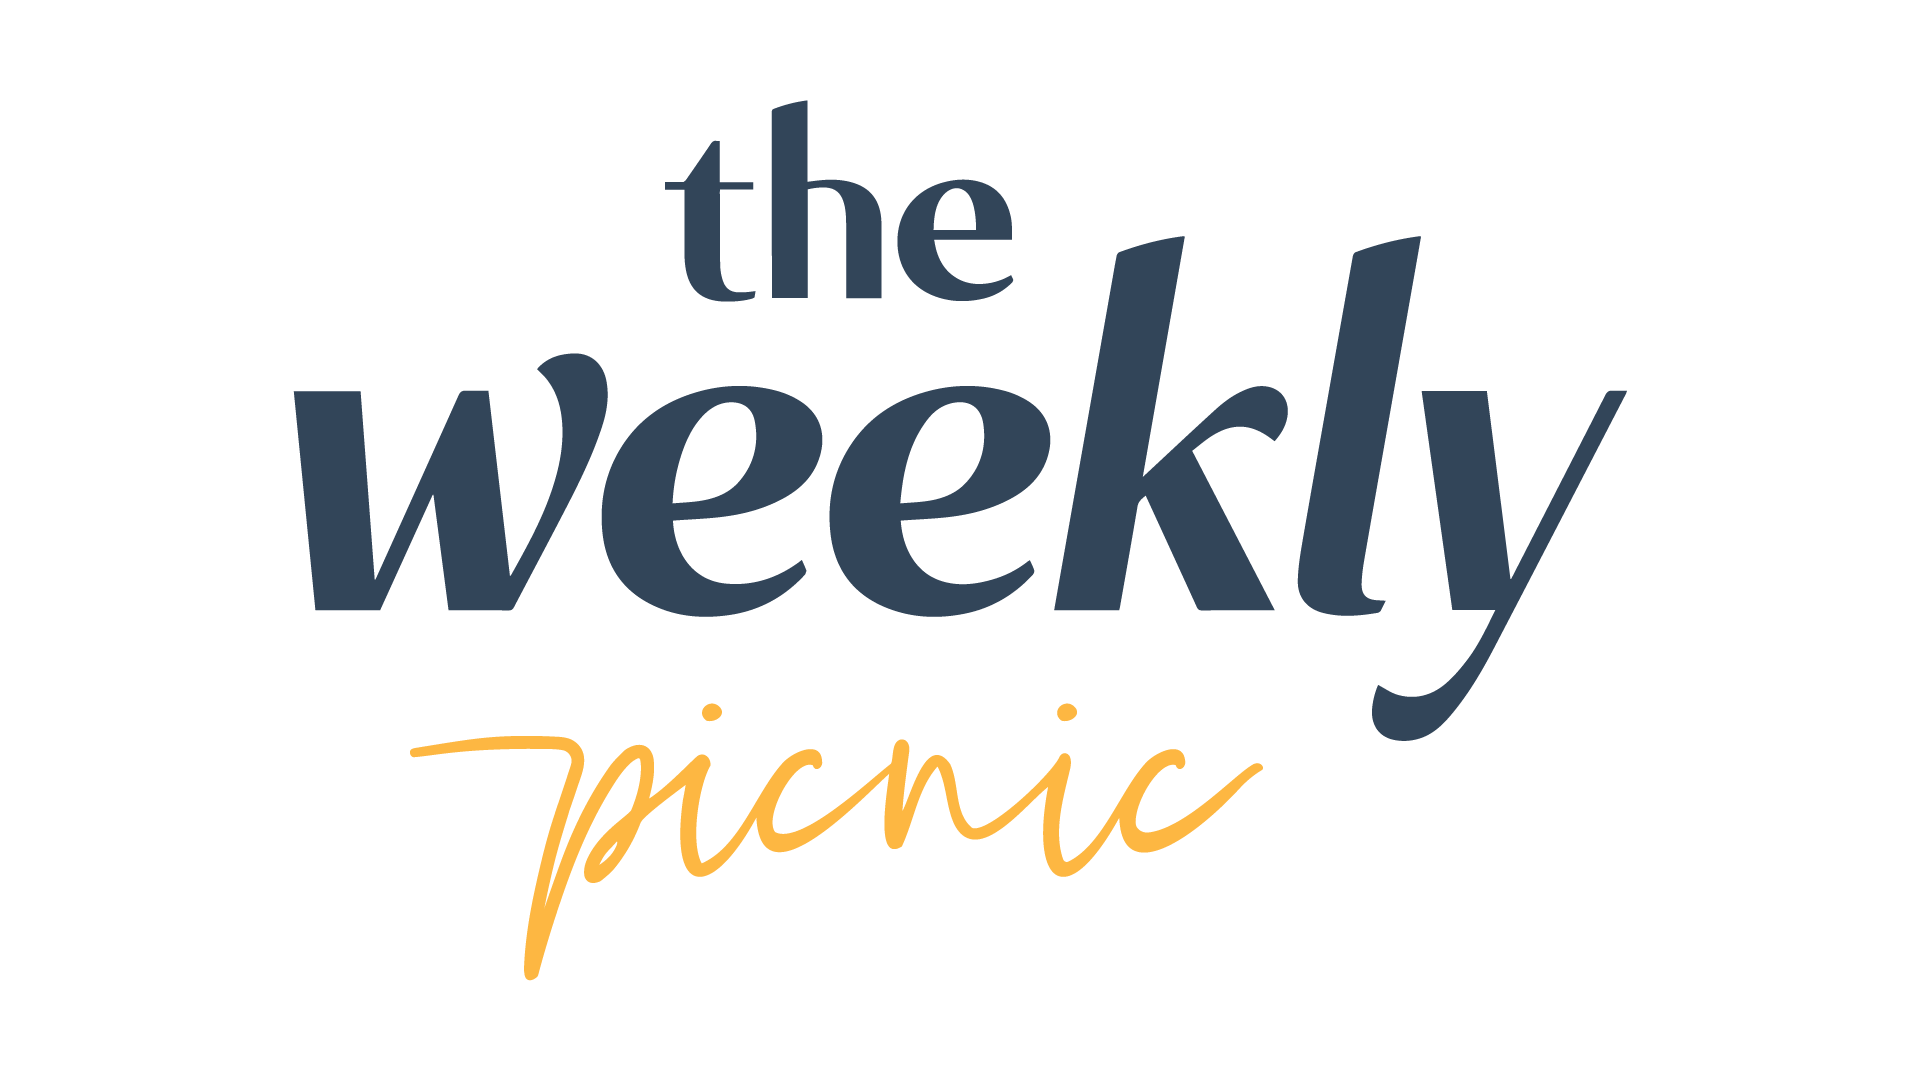 The Weekly Picnic